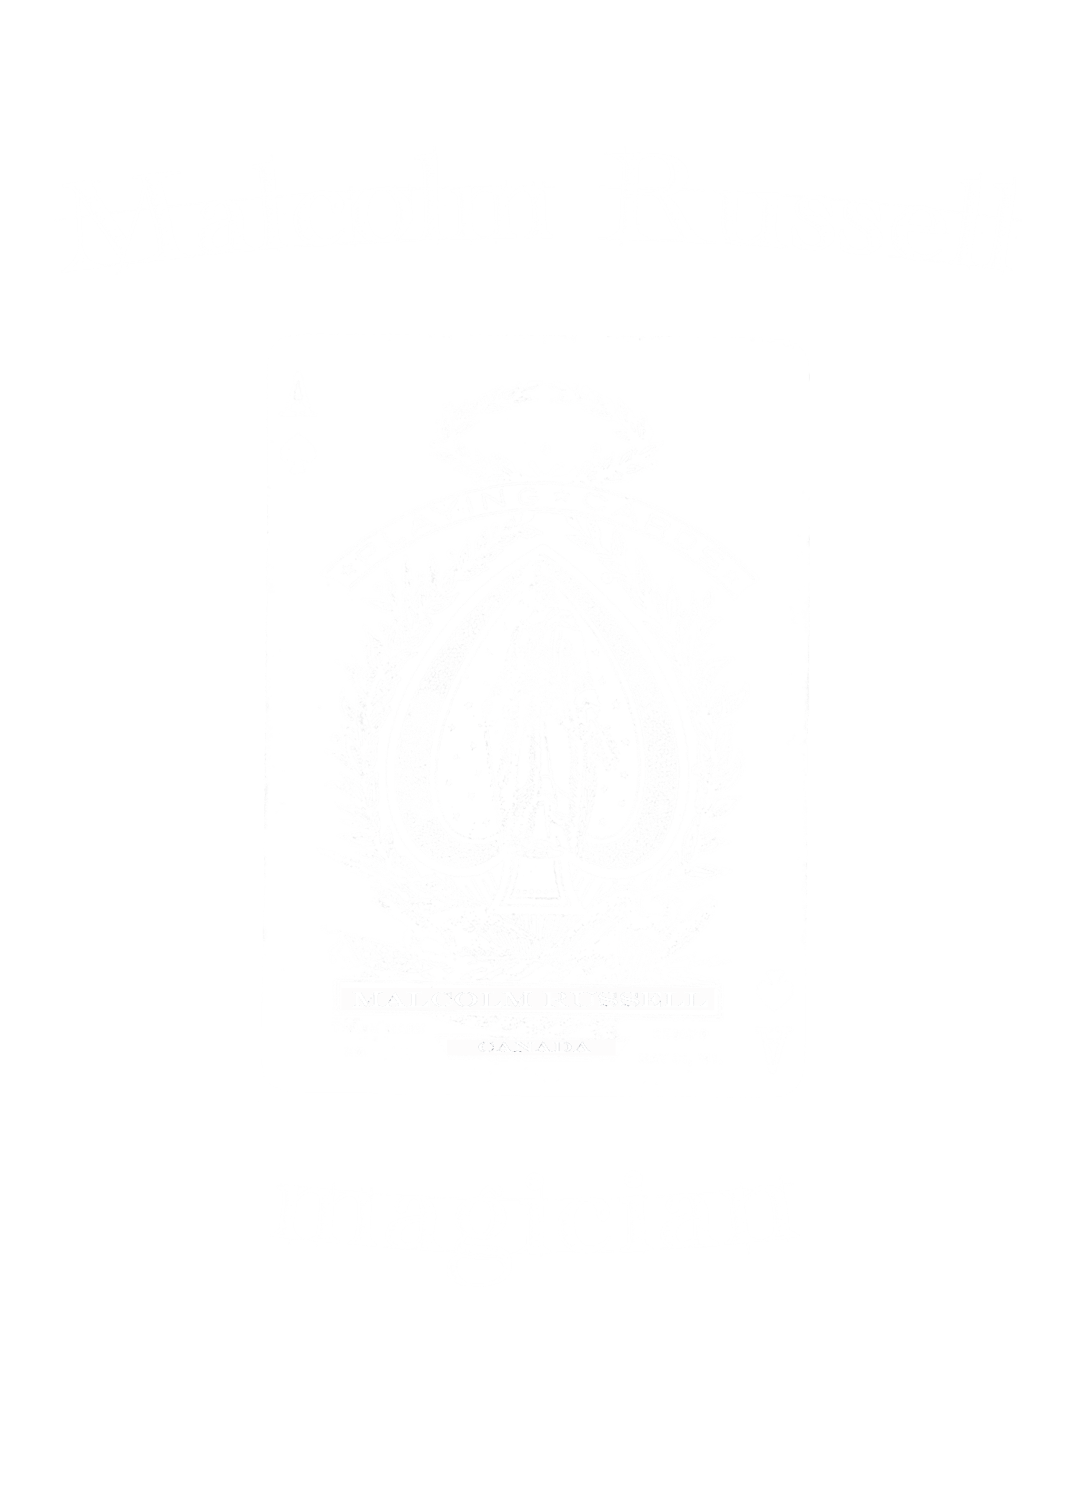 Malcolm Russell magician playing card logo